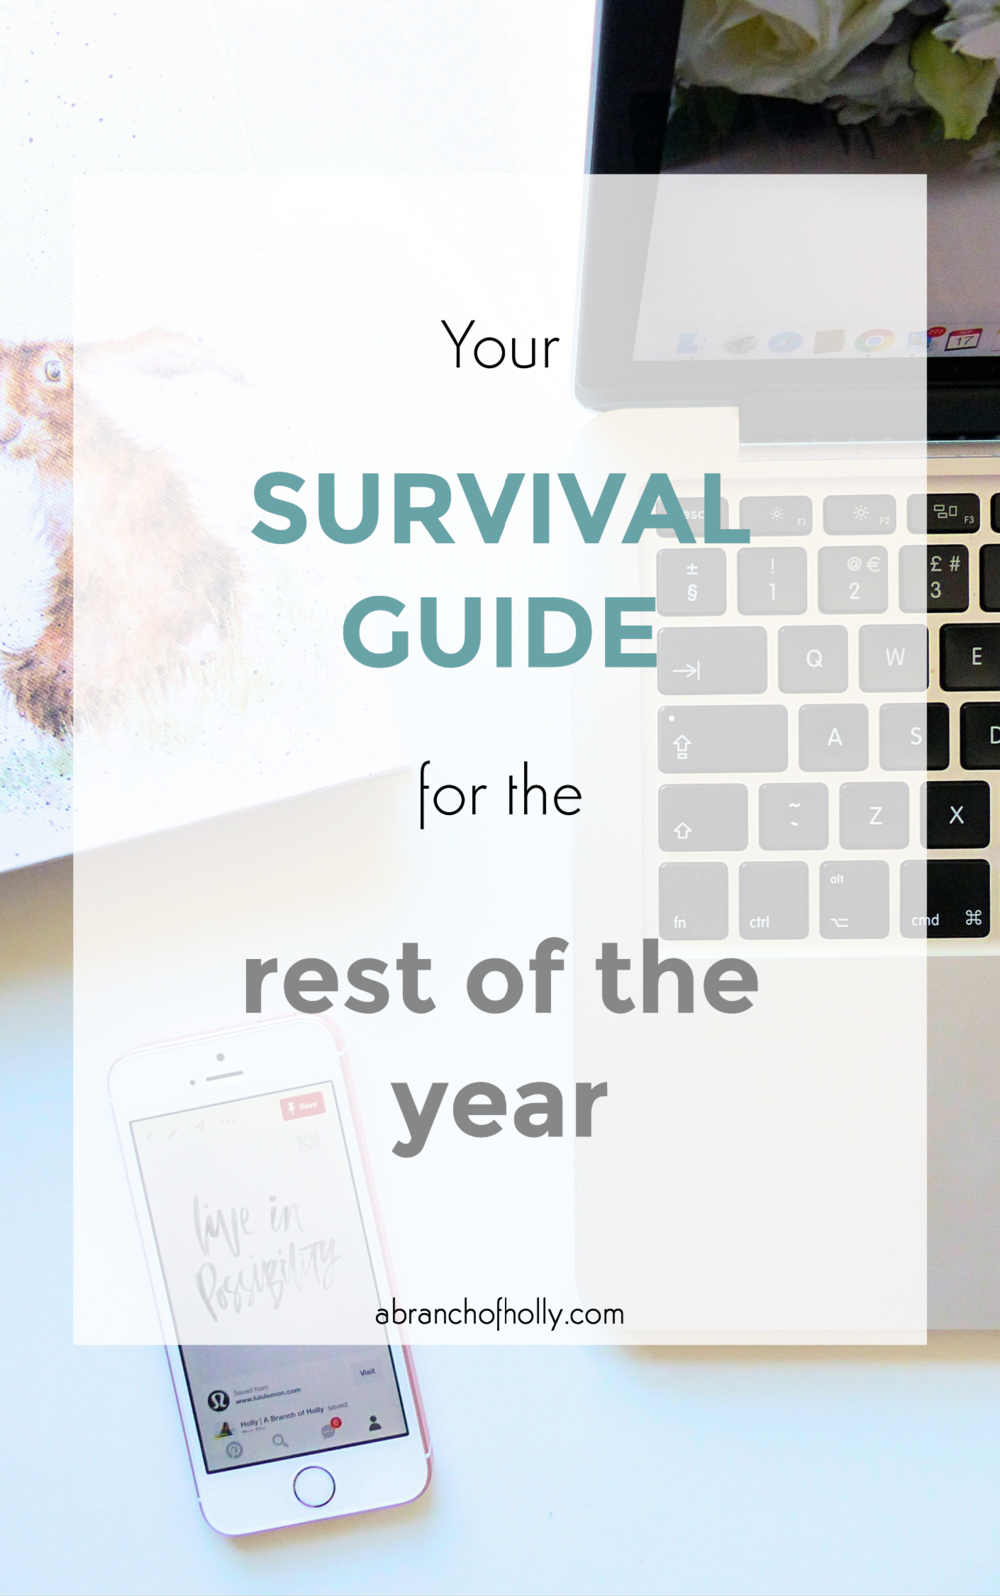 your survival guide for the rest of the year